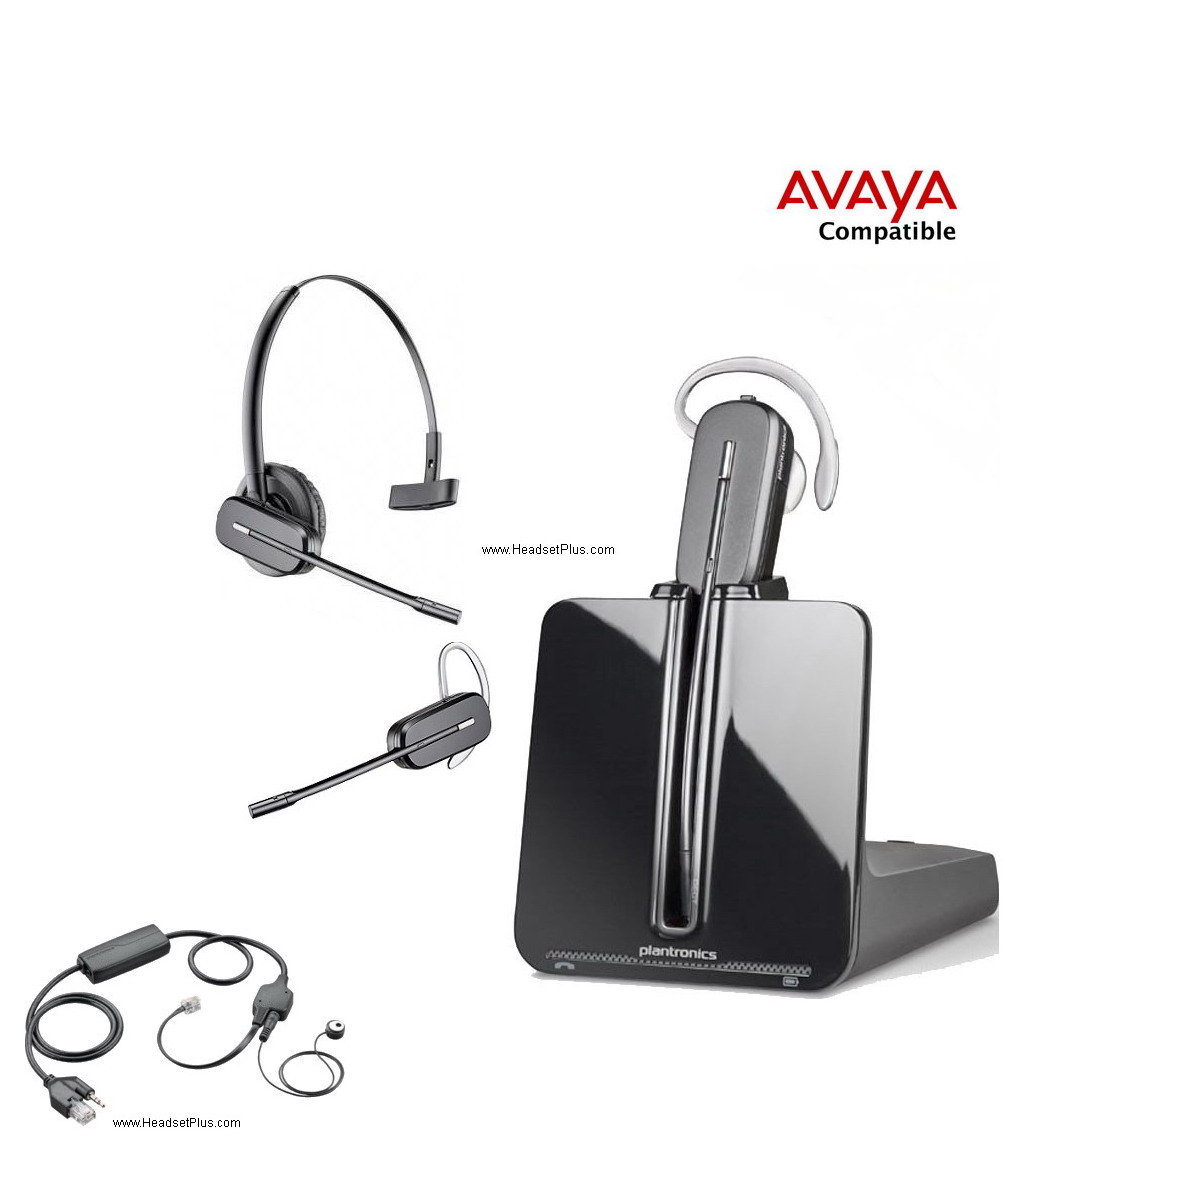 Plantronics cs540 pairing instructions